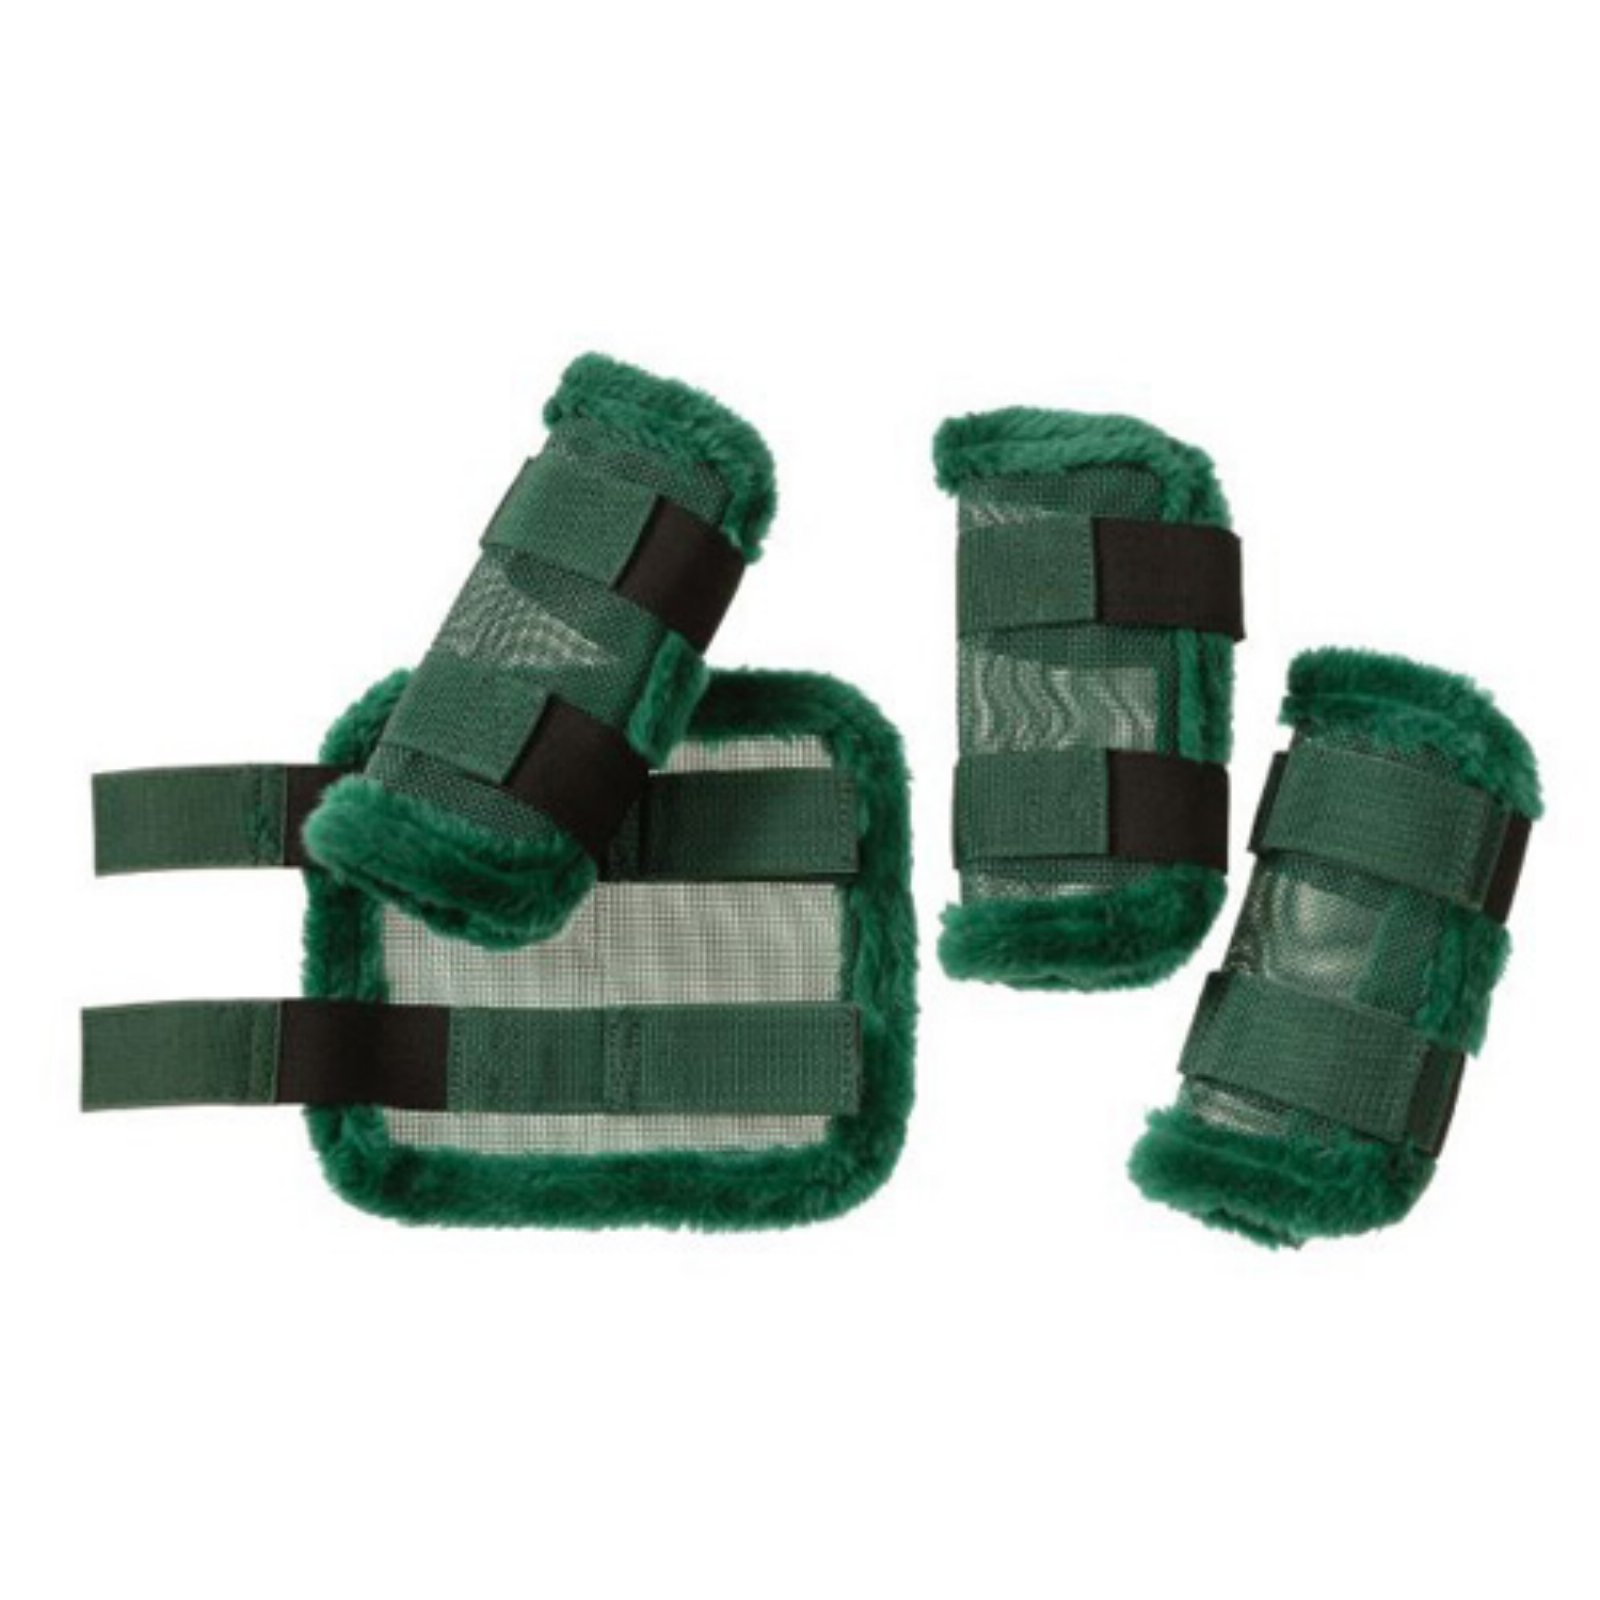 Tough-1 Miniature Fly Boots - Set of 4